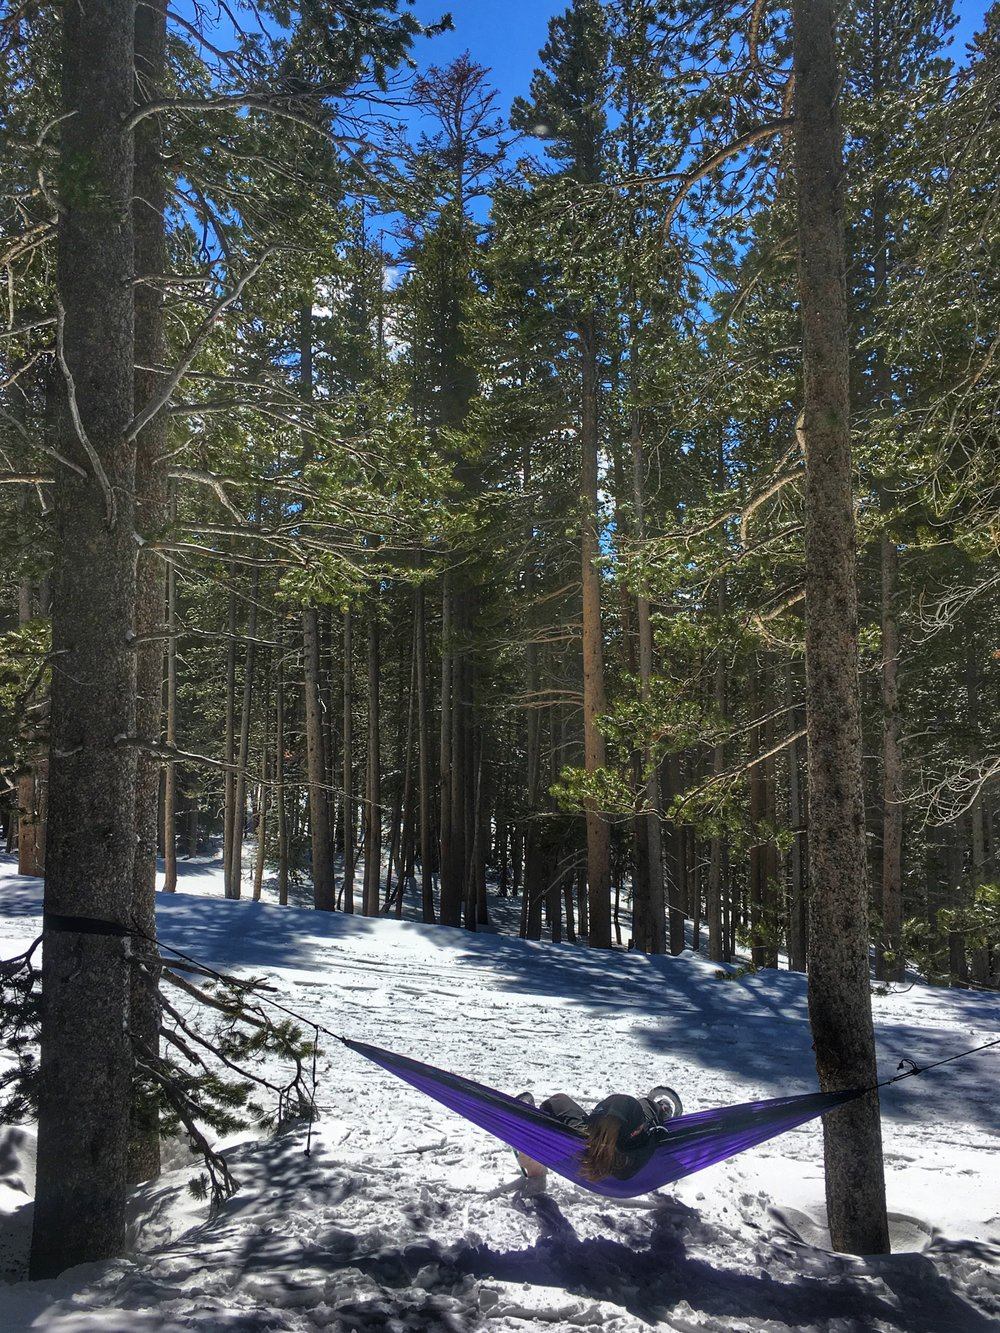 Don't forget your trusty hammock whenever you go on a snow shoeing adventure around Lake Mary basin. There are so many places to explore.